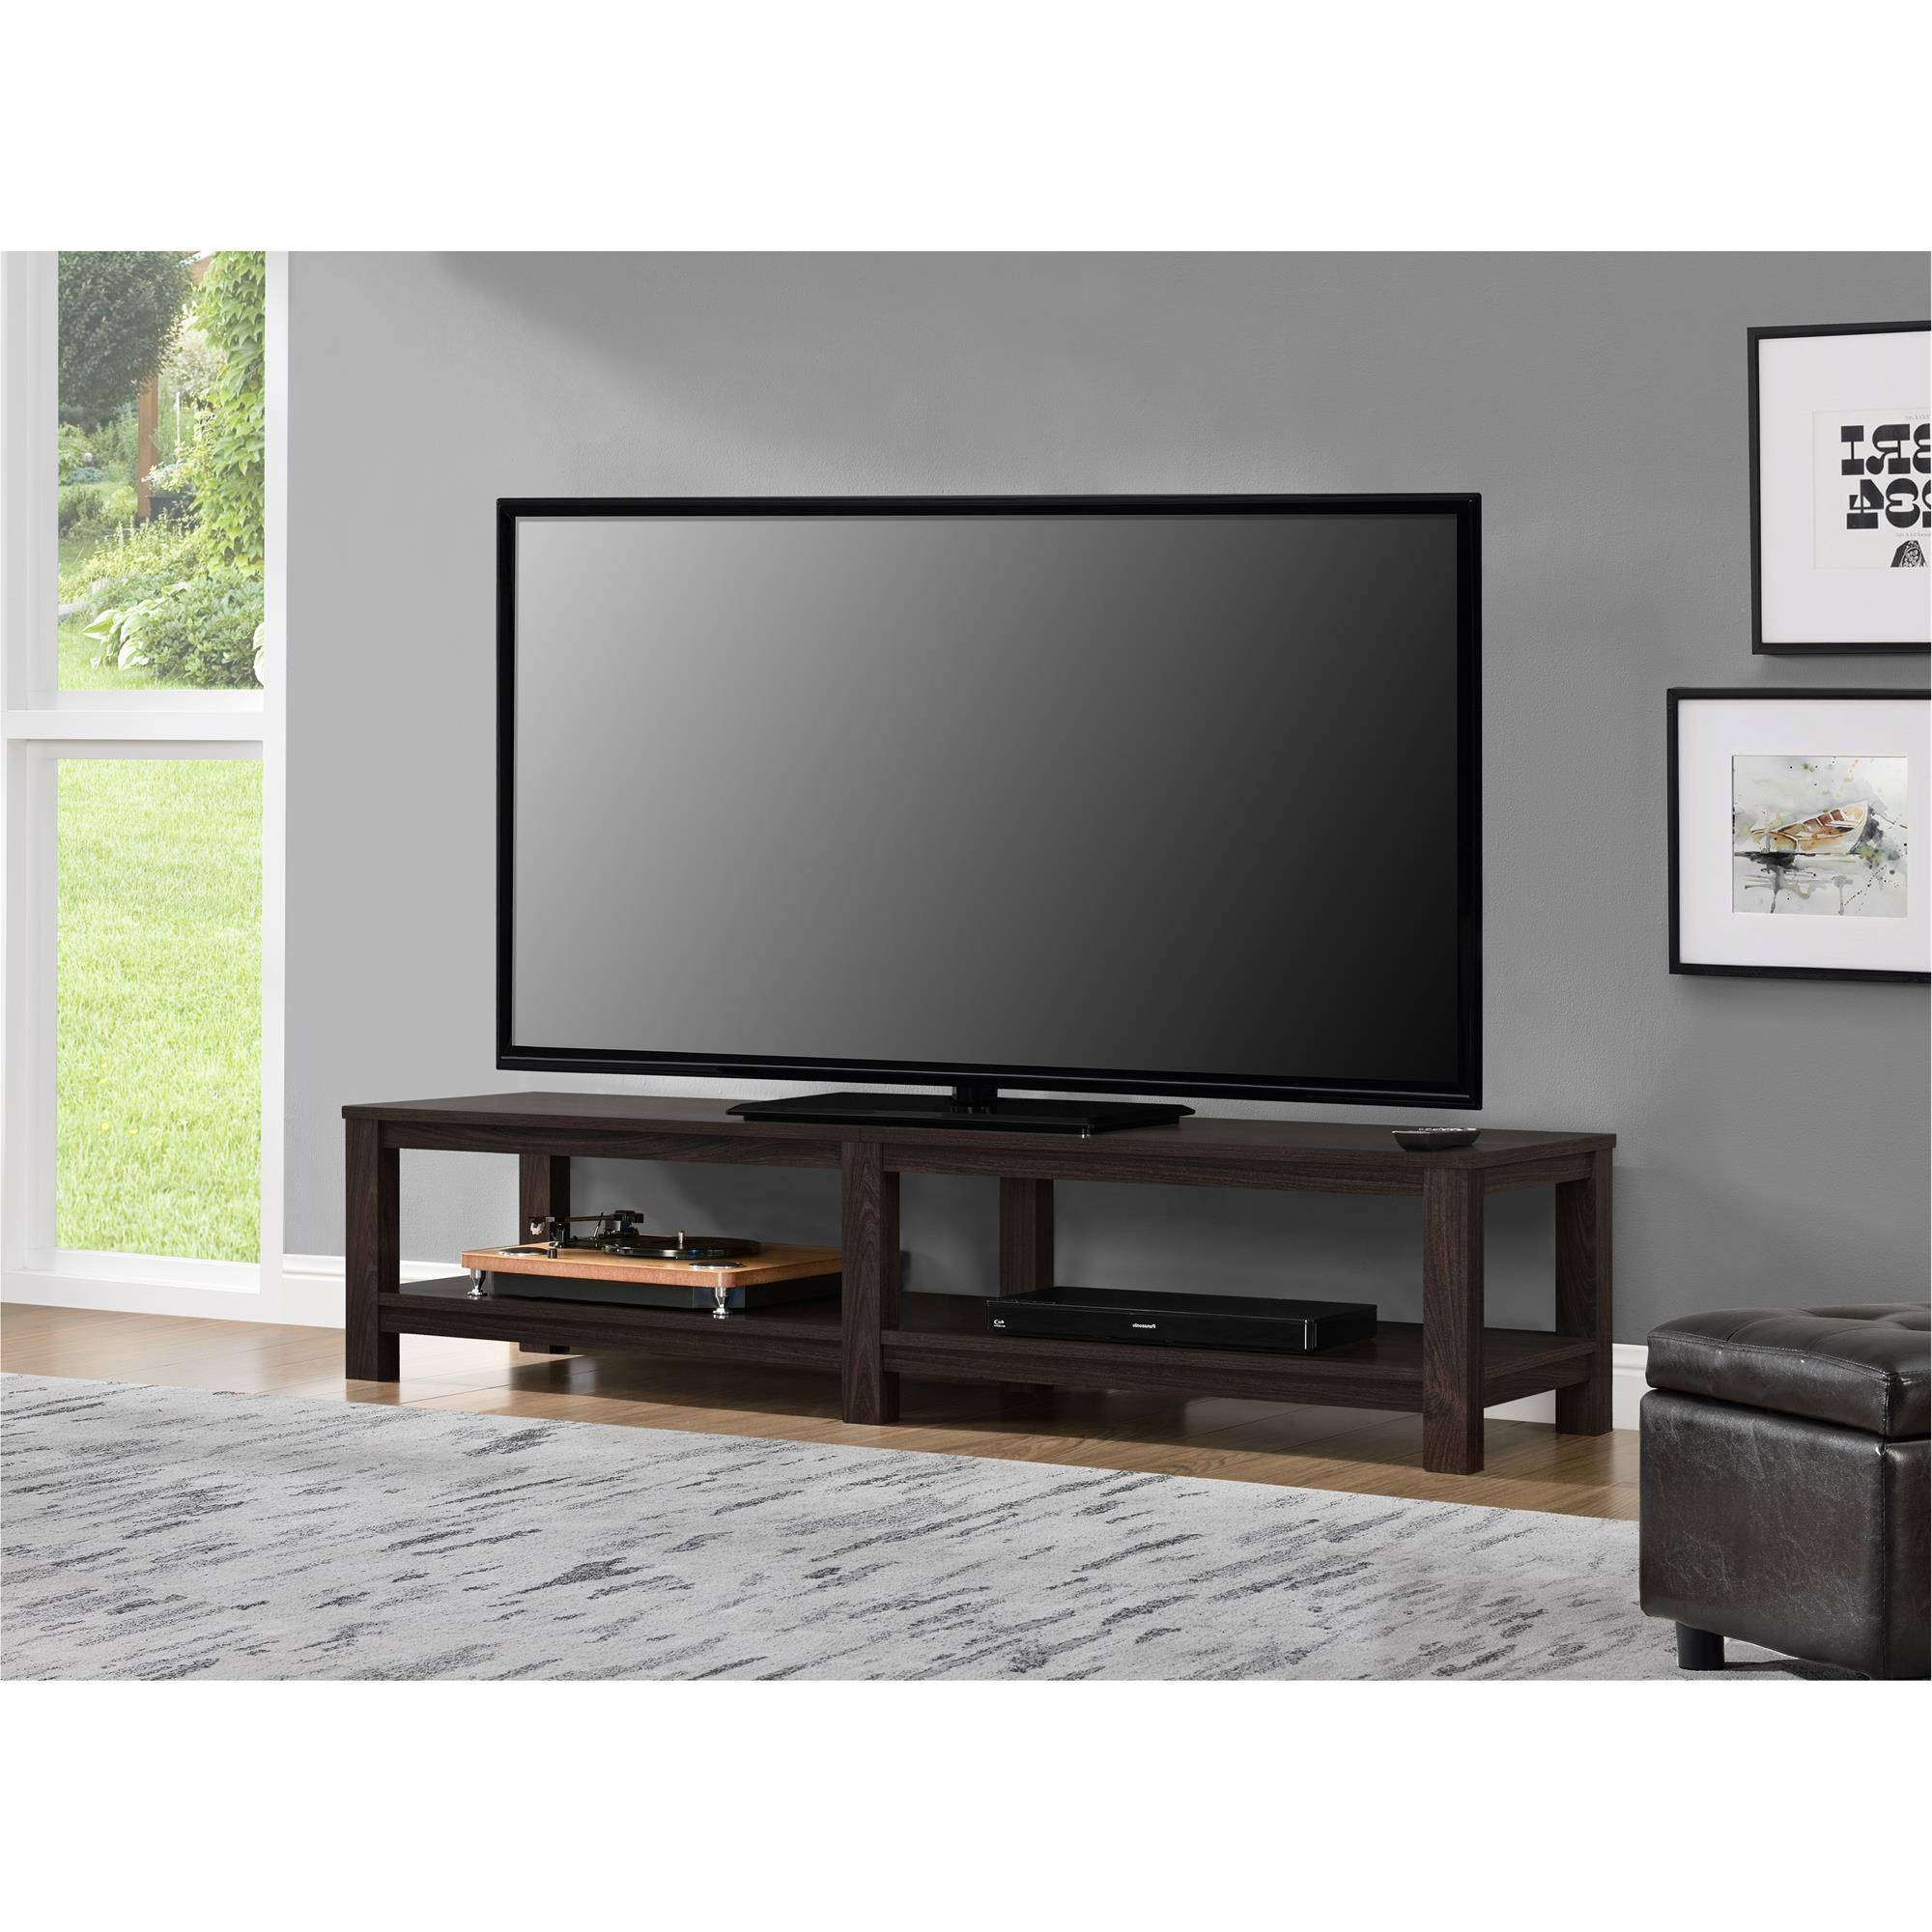 Bedroom Design : Marvelous Television Tables Corner Tv Shelf Low Throughout Tv Stands For Plasma Tv (View 13 of 15)